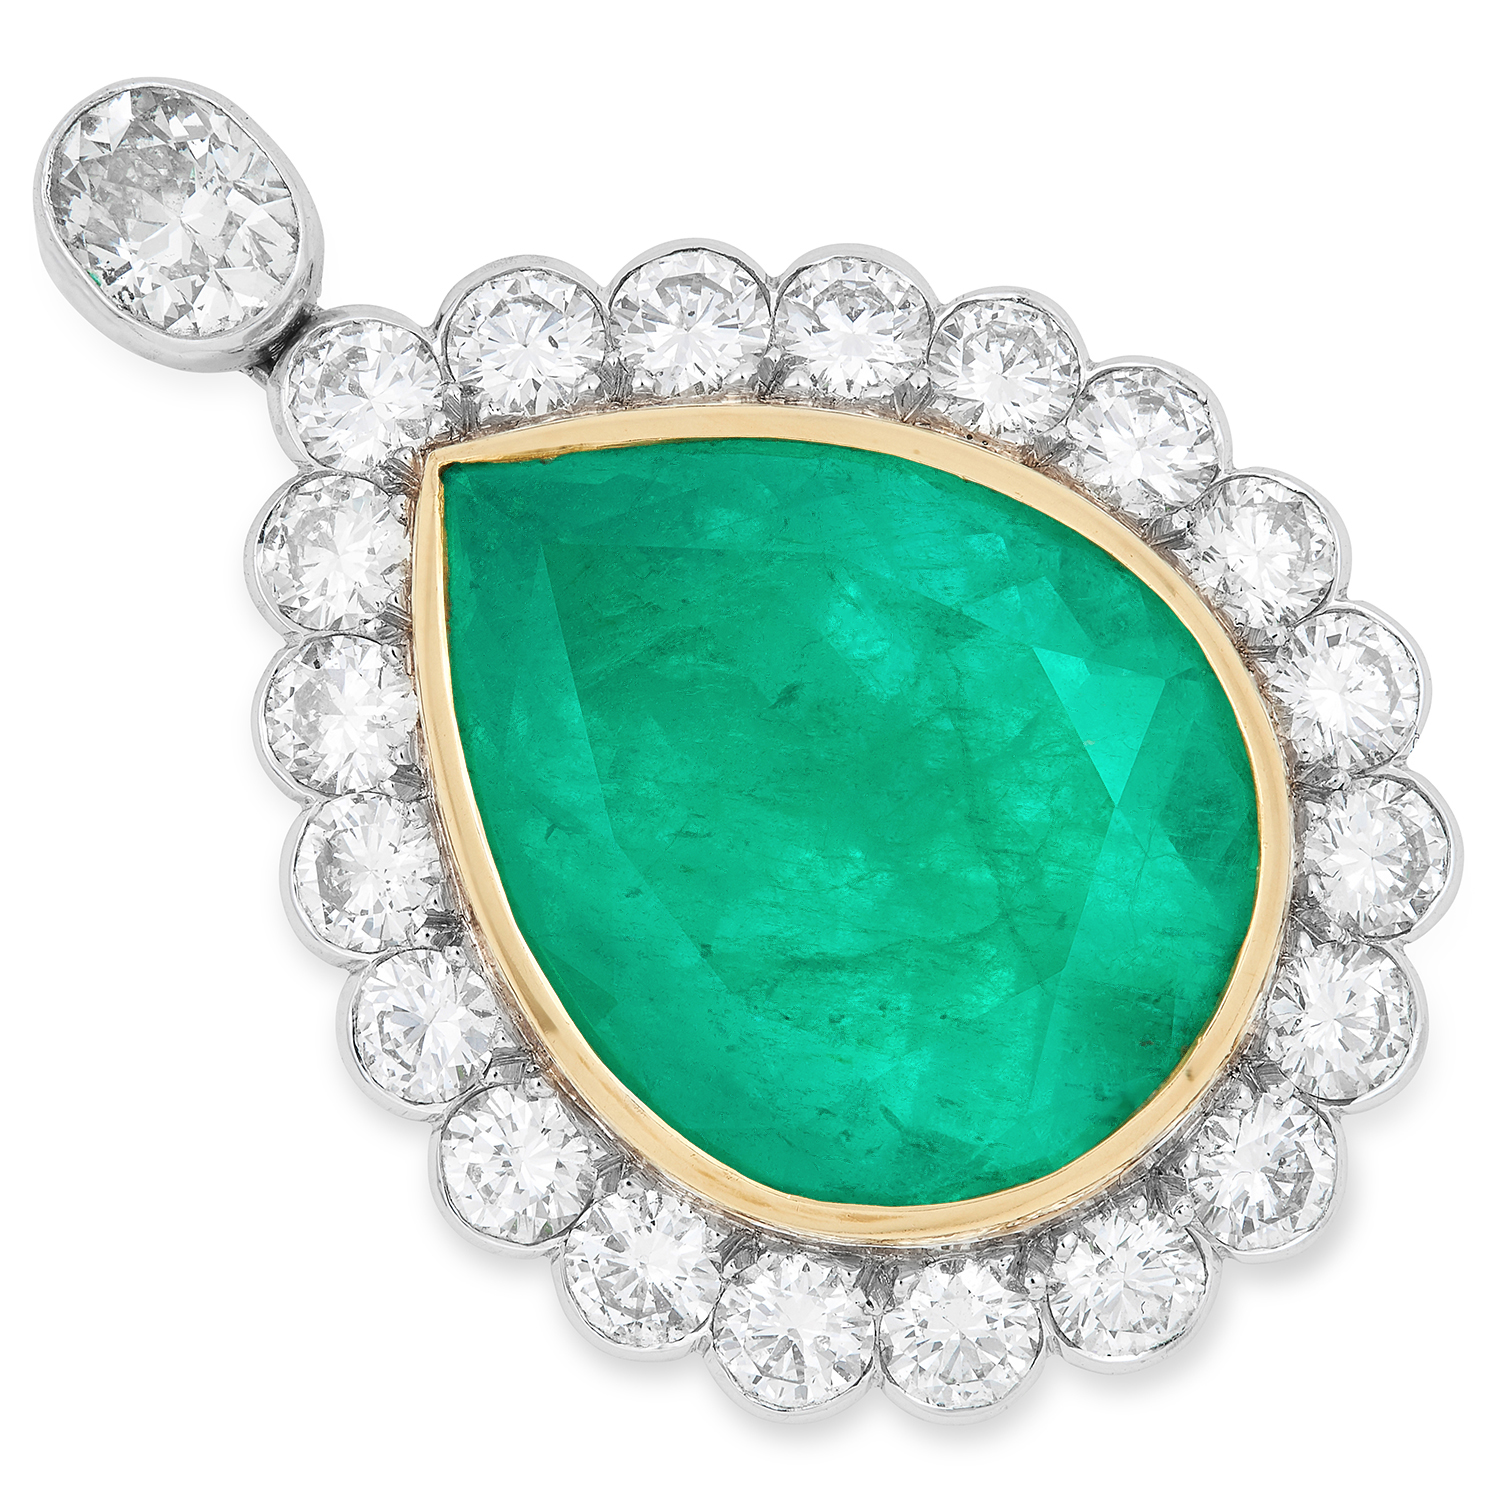 A COLOMBIAN EMERALD AND DIAMOND PENDANT set with a pear cut emerald of 25.81 carats, below an oval